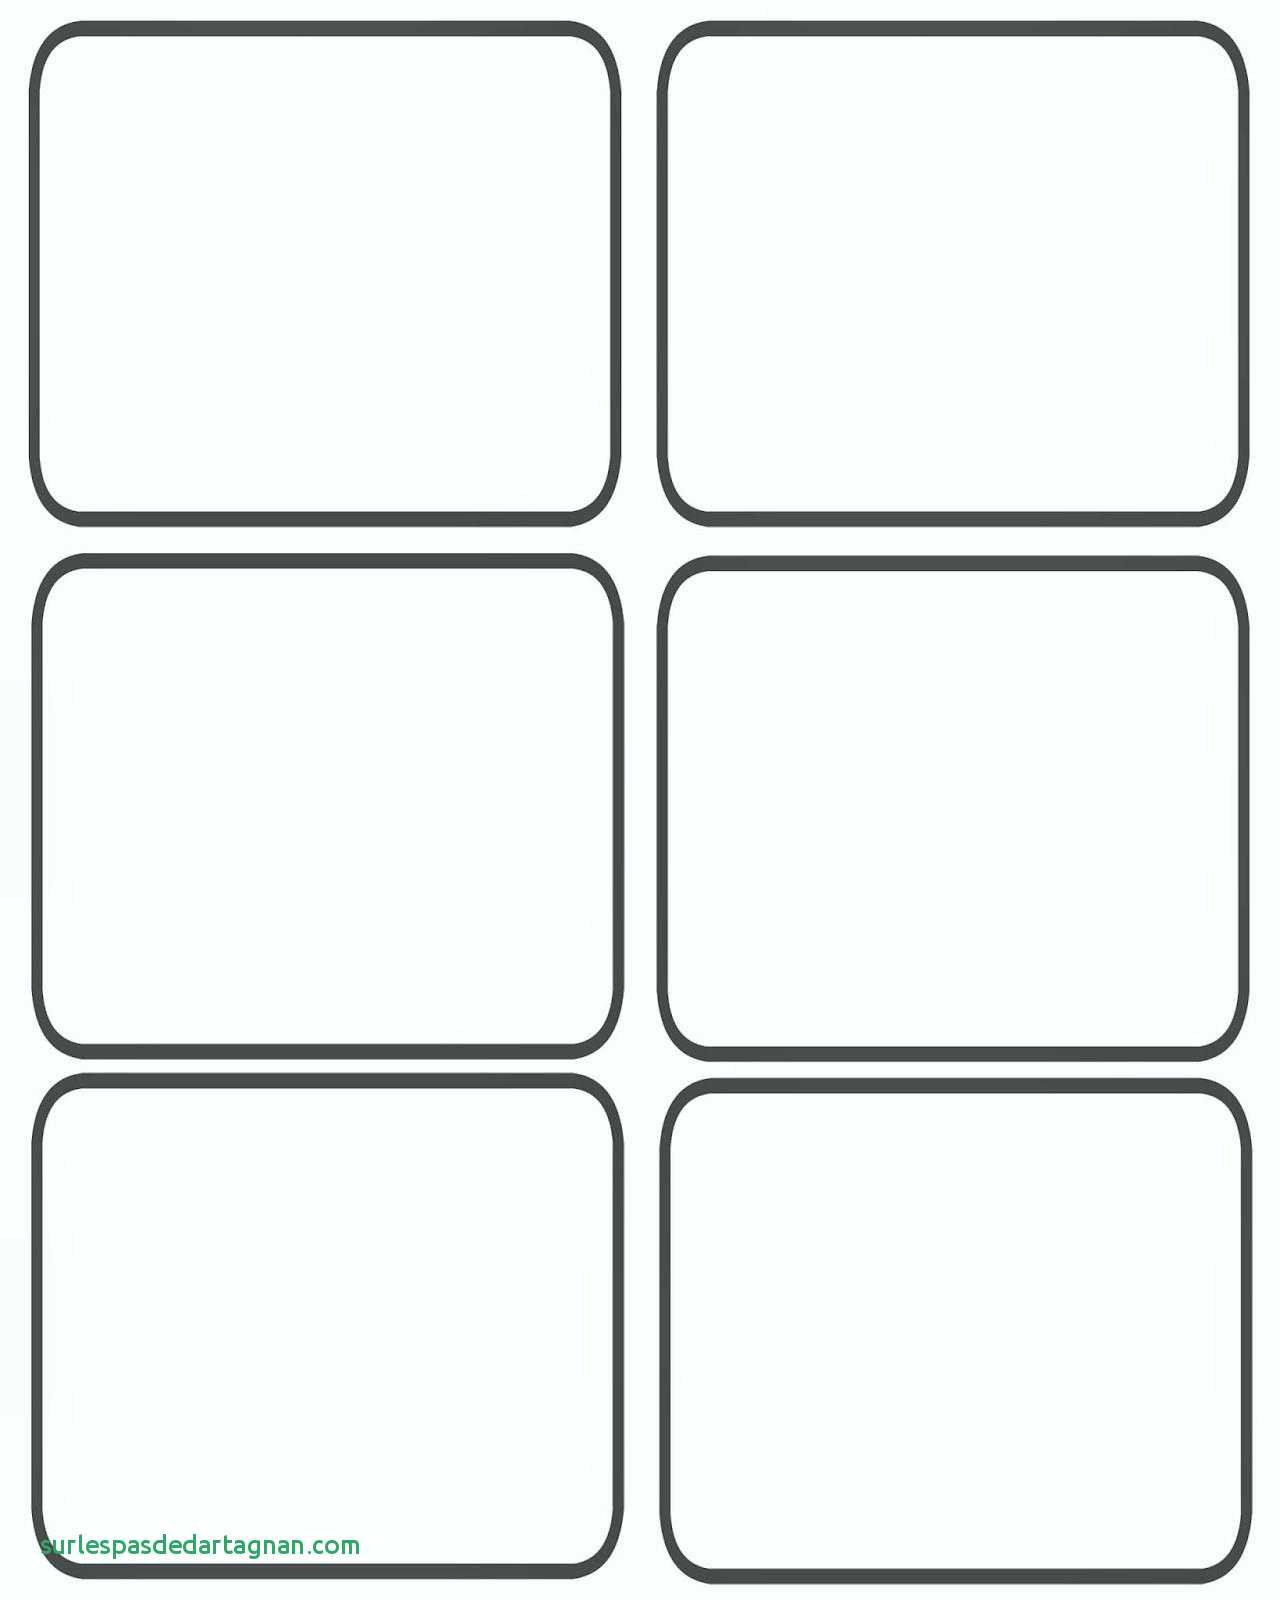 Priceless image pertaining to printable playing card template